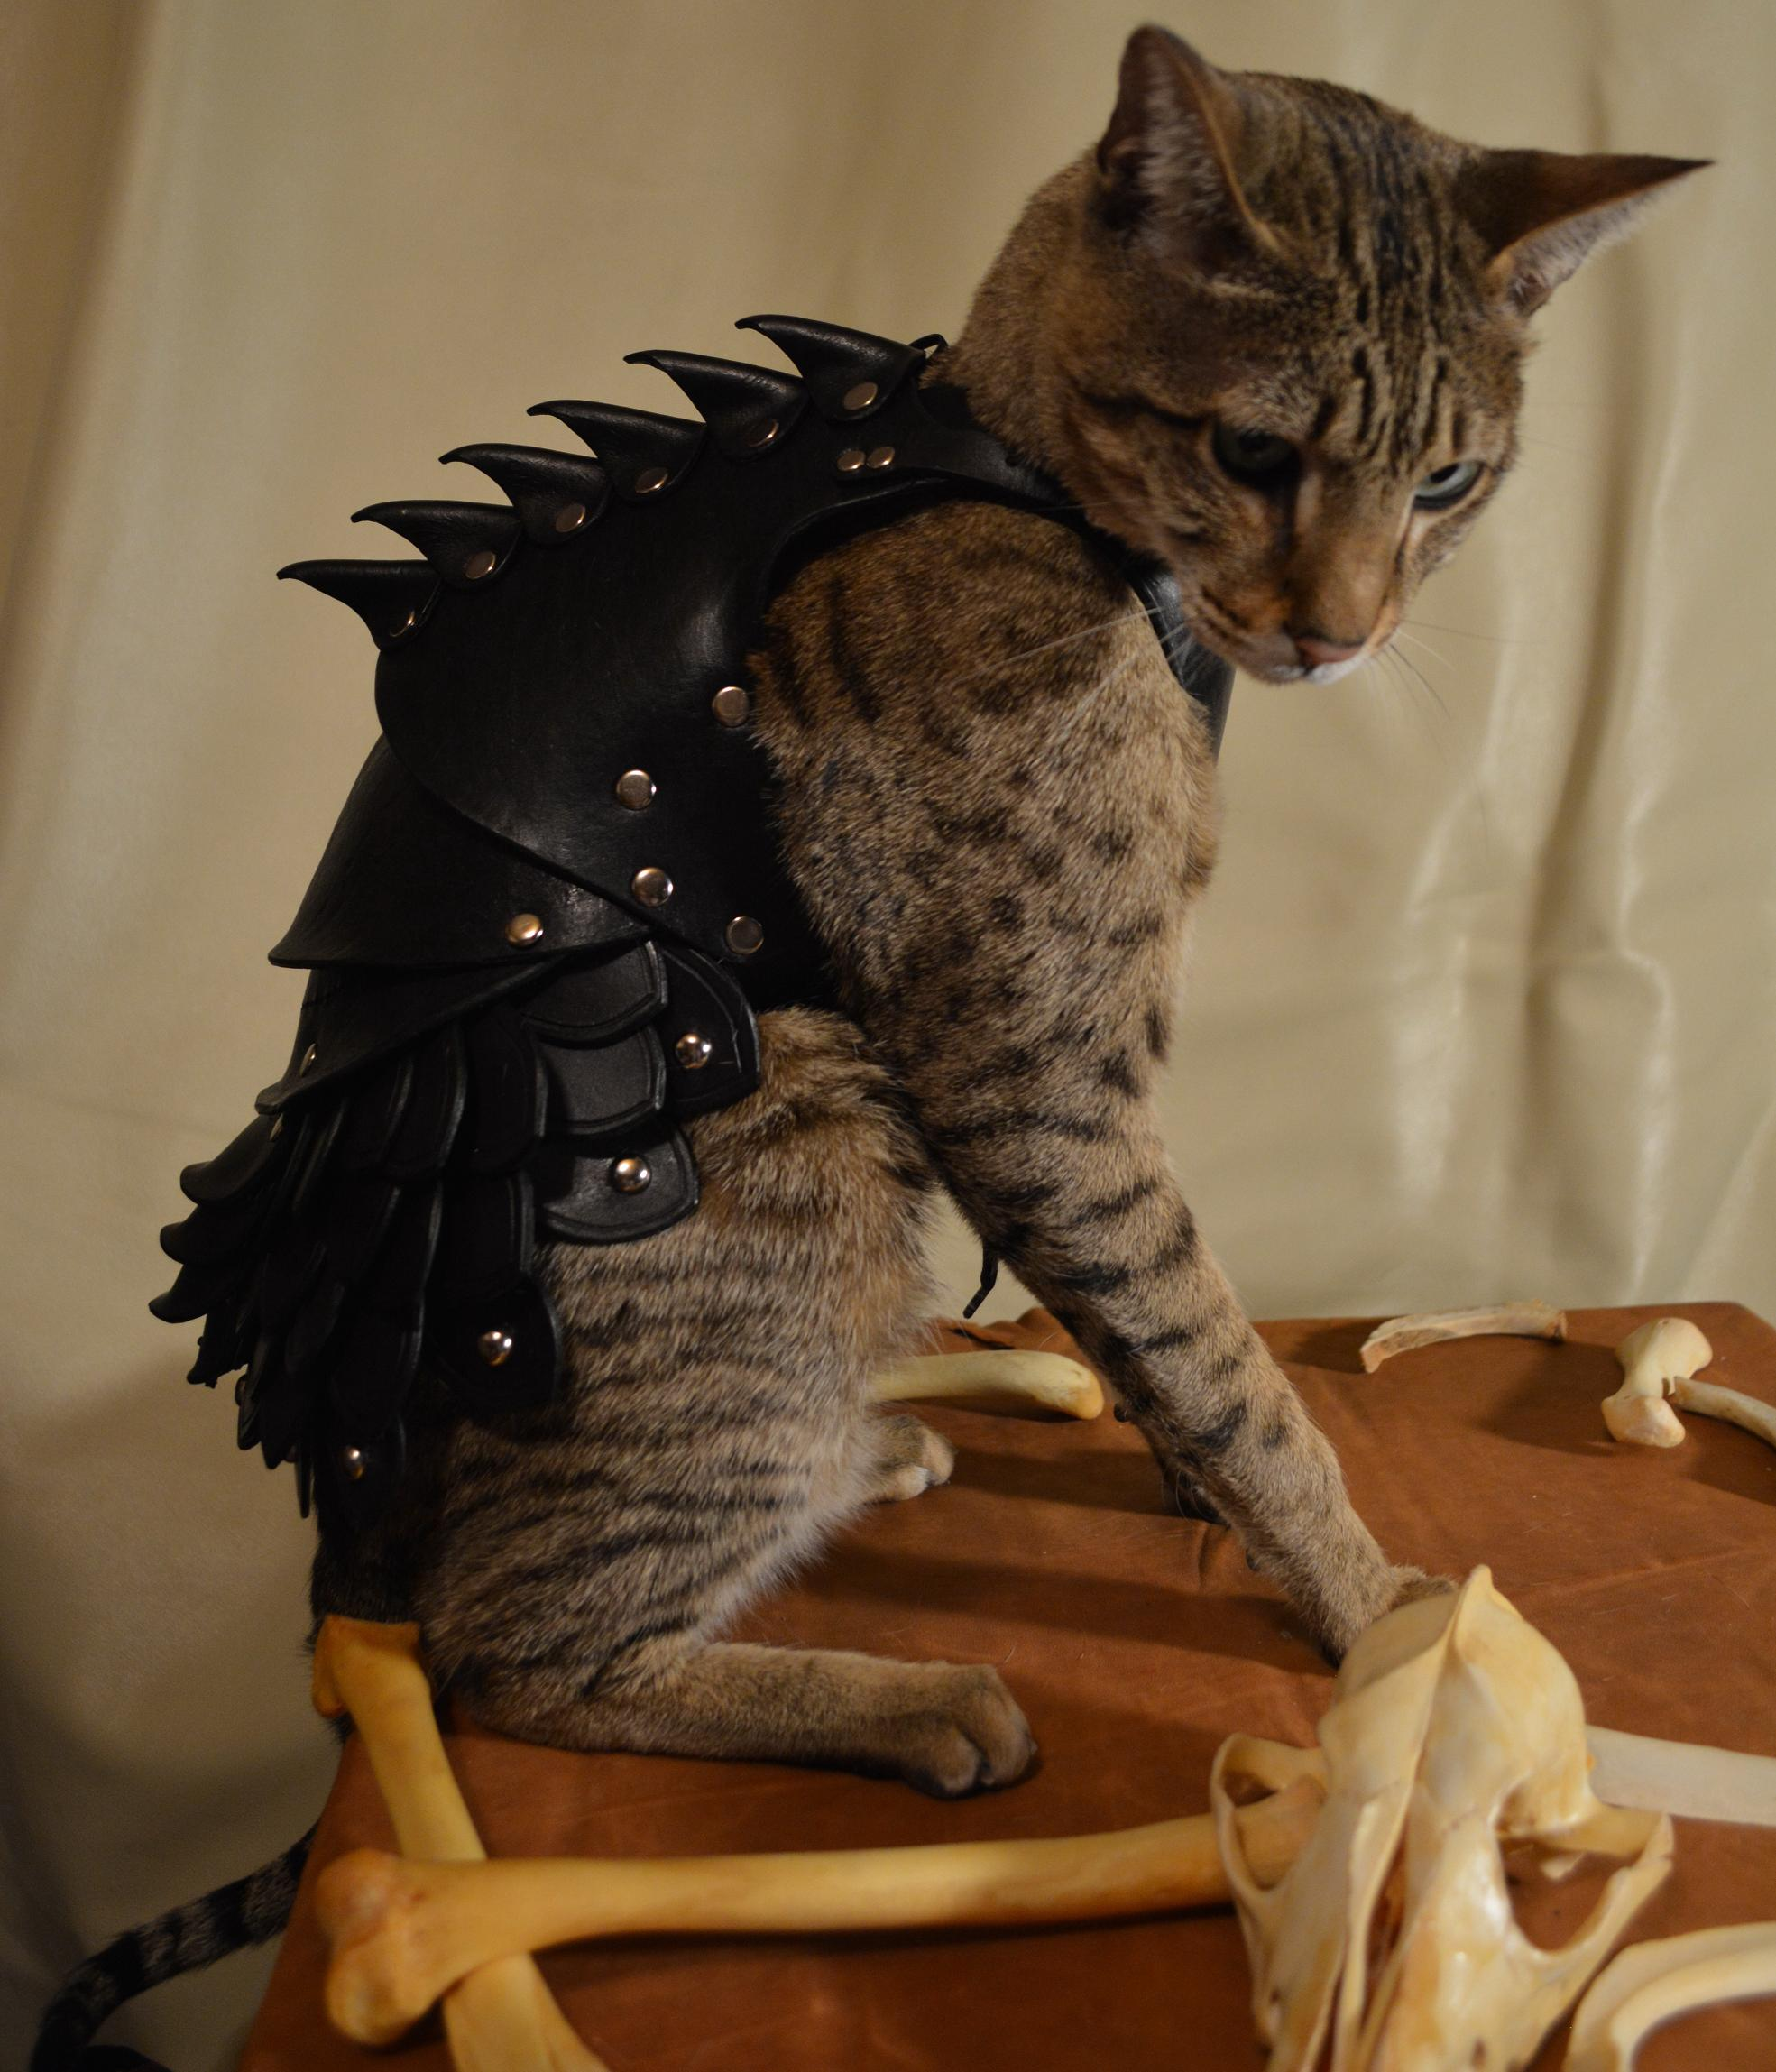 "{""author"":"""",""link"":""http%3A//savagepunkstudio.deviantart.com/art/Cat-Battle-Armor-3-425706059"",""descr"":""доспехи%20кота""}"